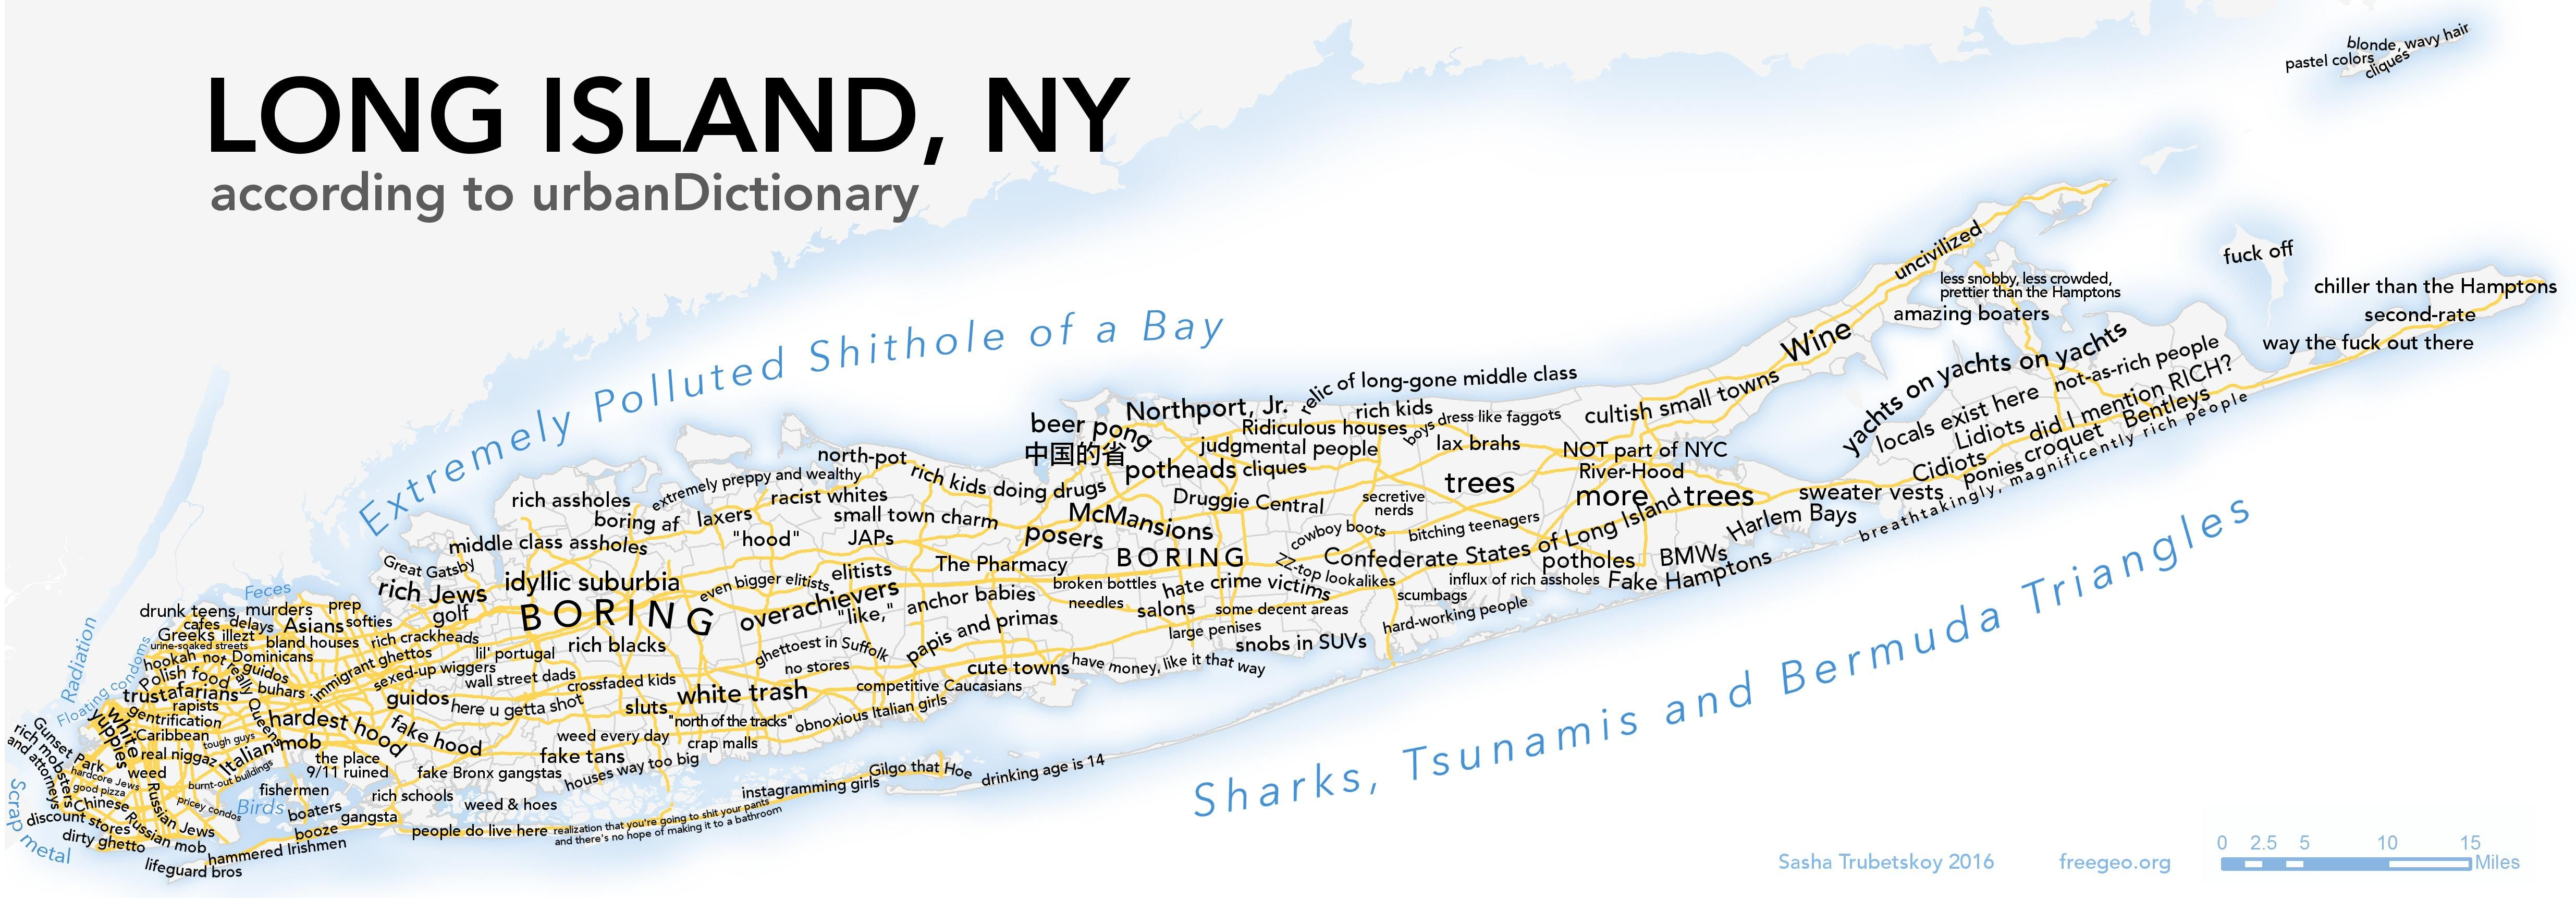 Long Island according to urbanDictionary by Trubetskoy map